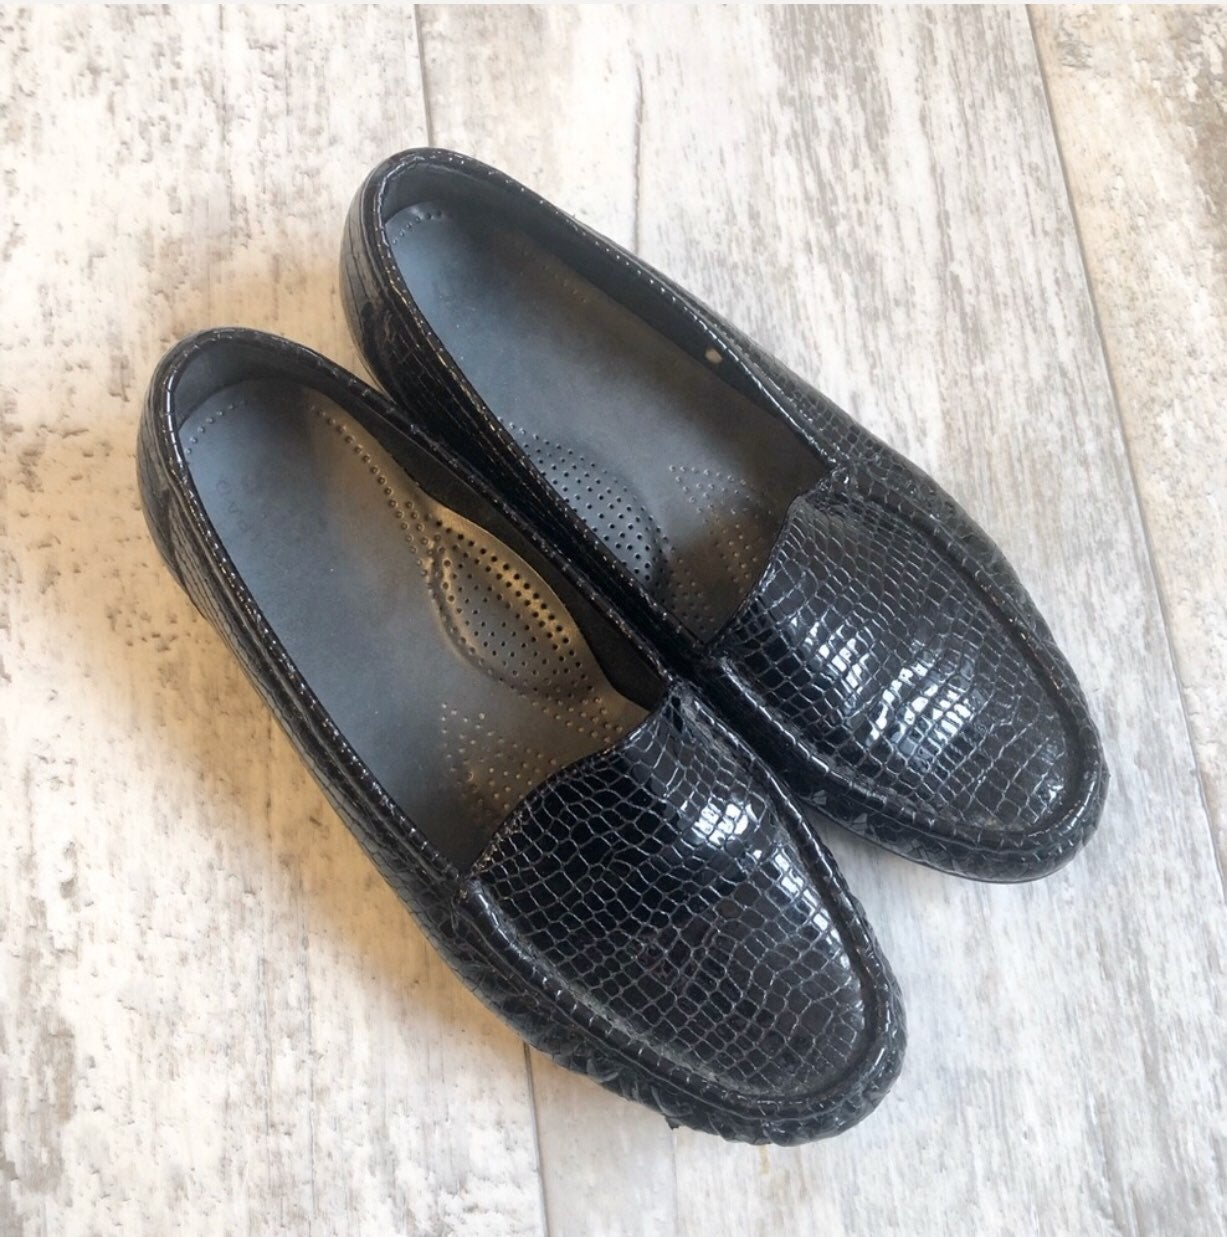 SAS Black Patent Leather Croc Loafers